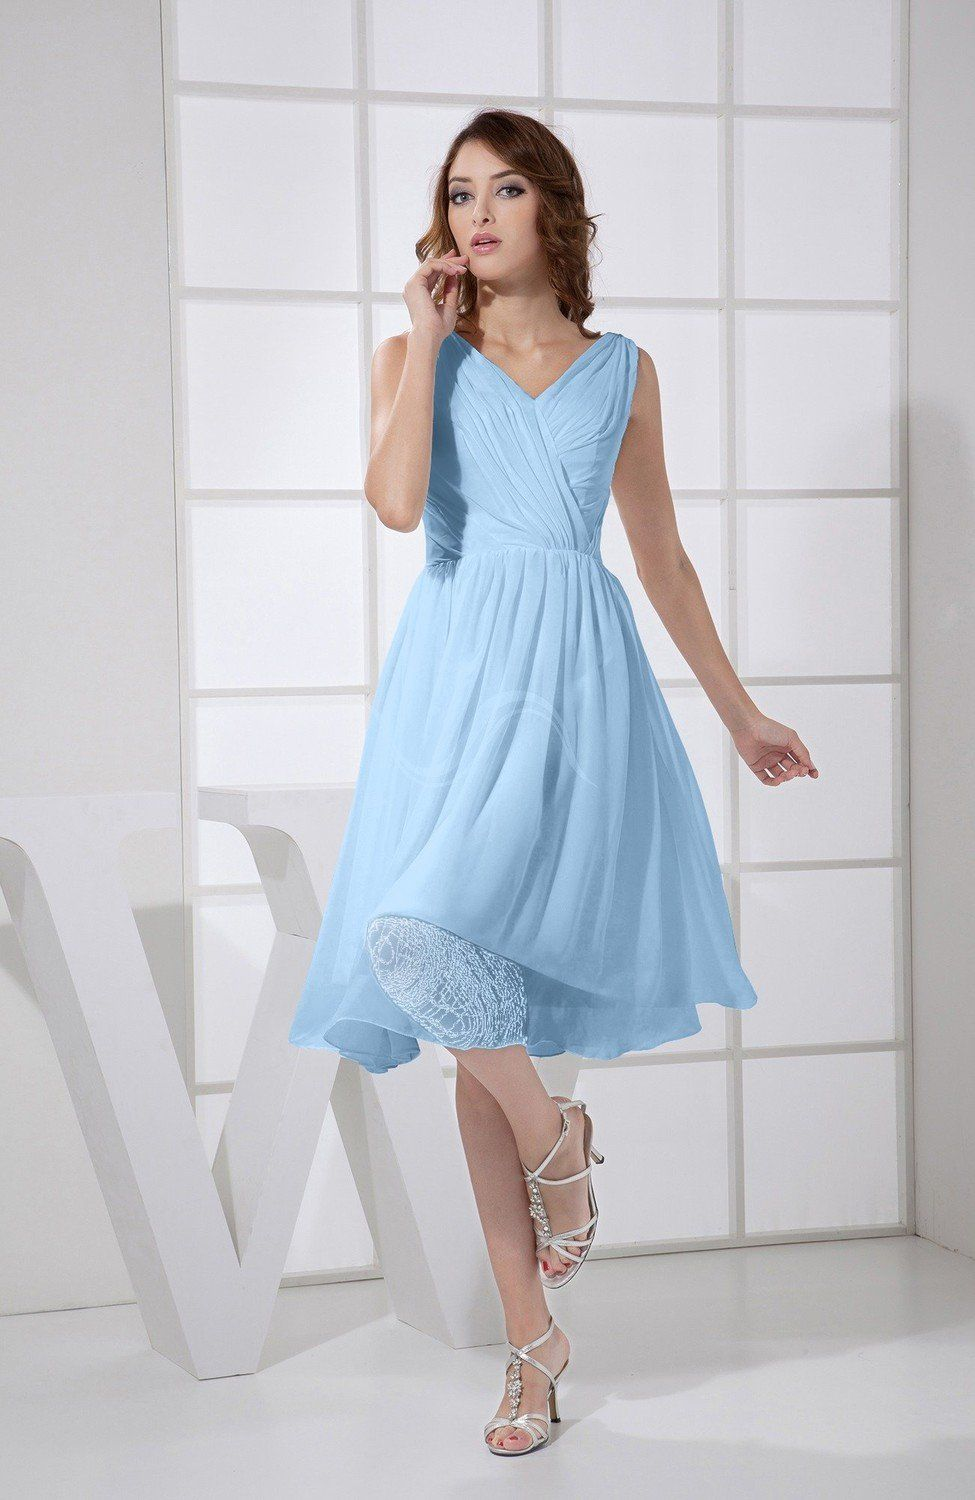 Sky Blue Prom Dress - Plain A-line V-neck Sleeveless Knee Length ...